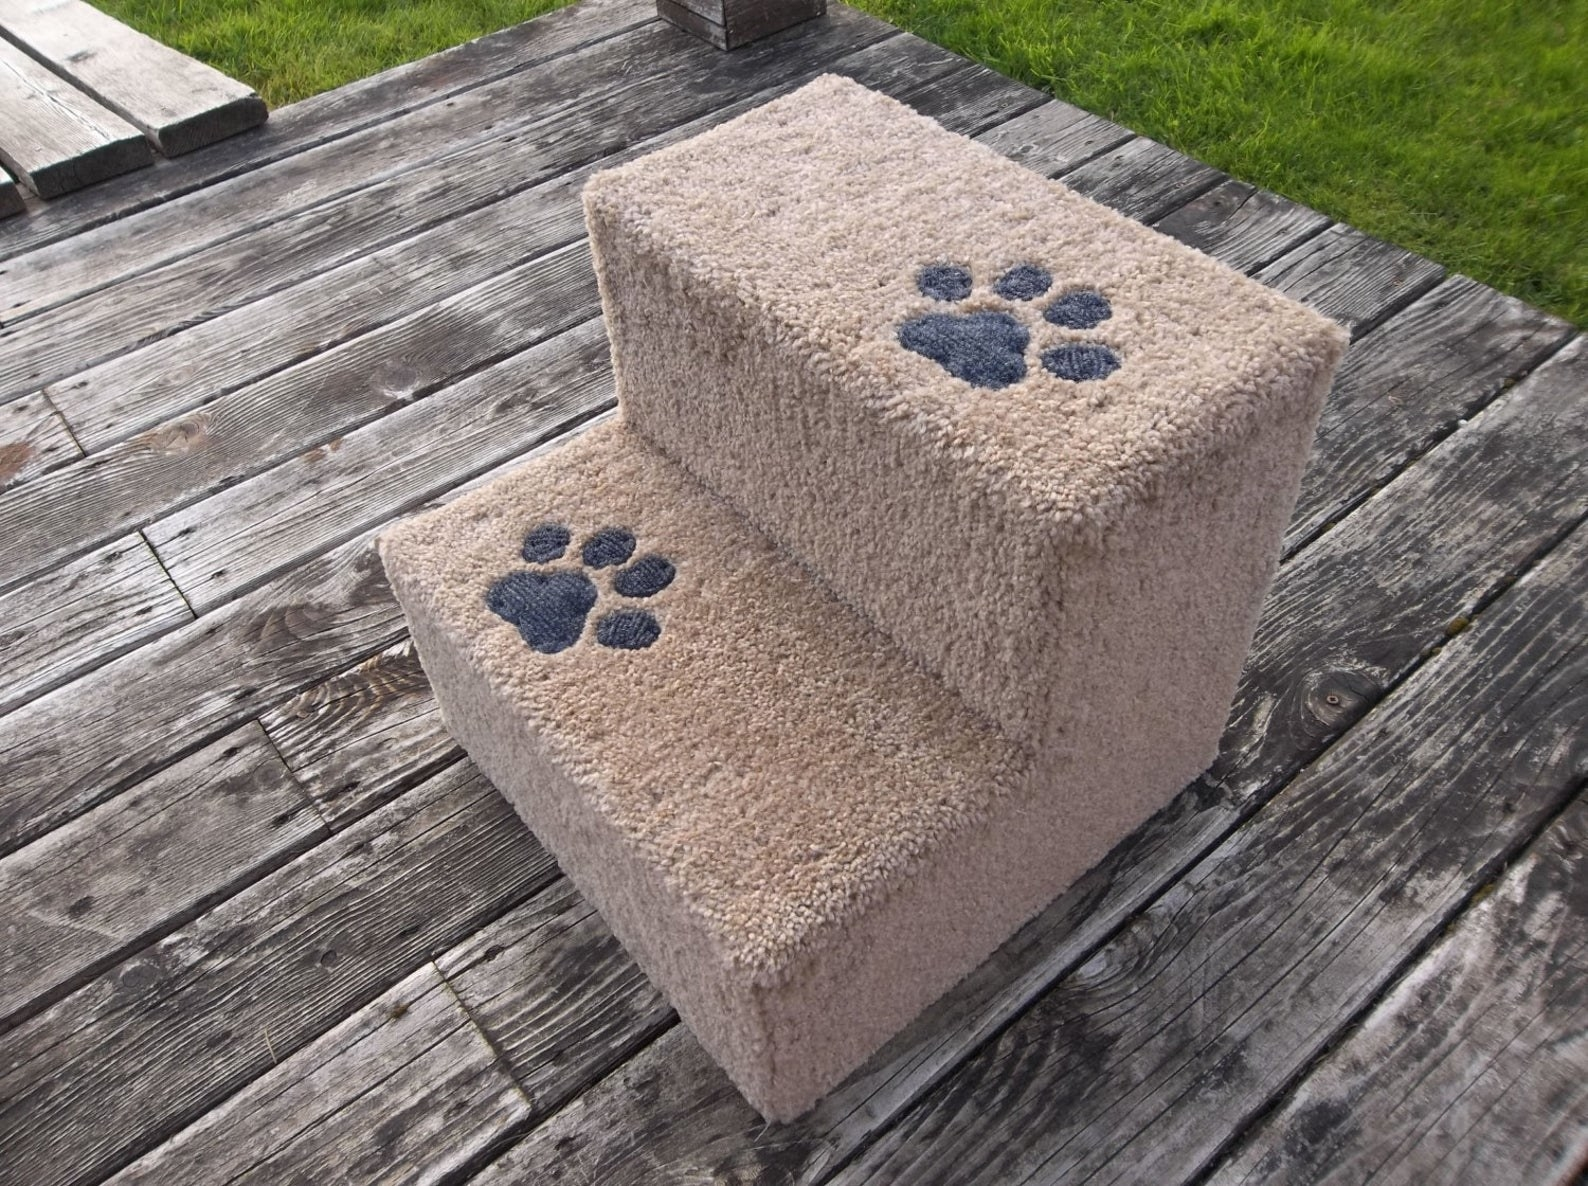 The steps with two platforms and little paw prints on them. It is covered in beige carpeting